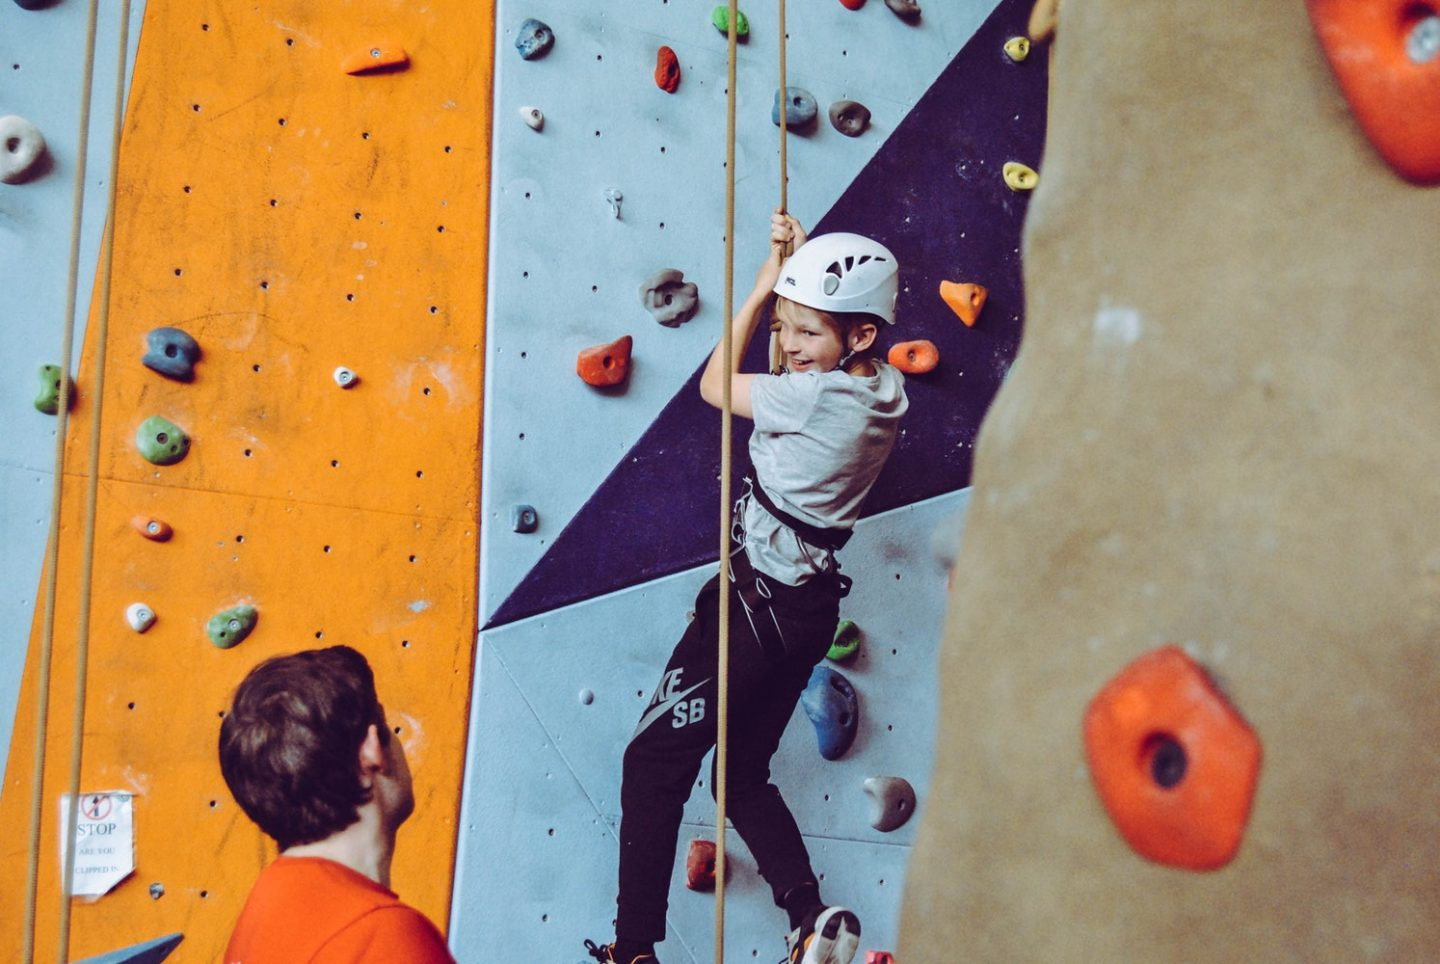 Adventurous sports for families in the UK